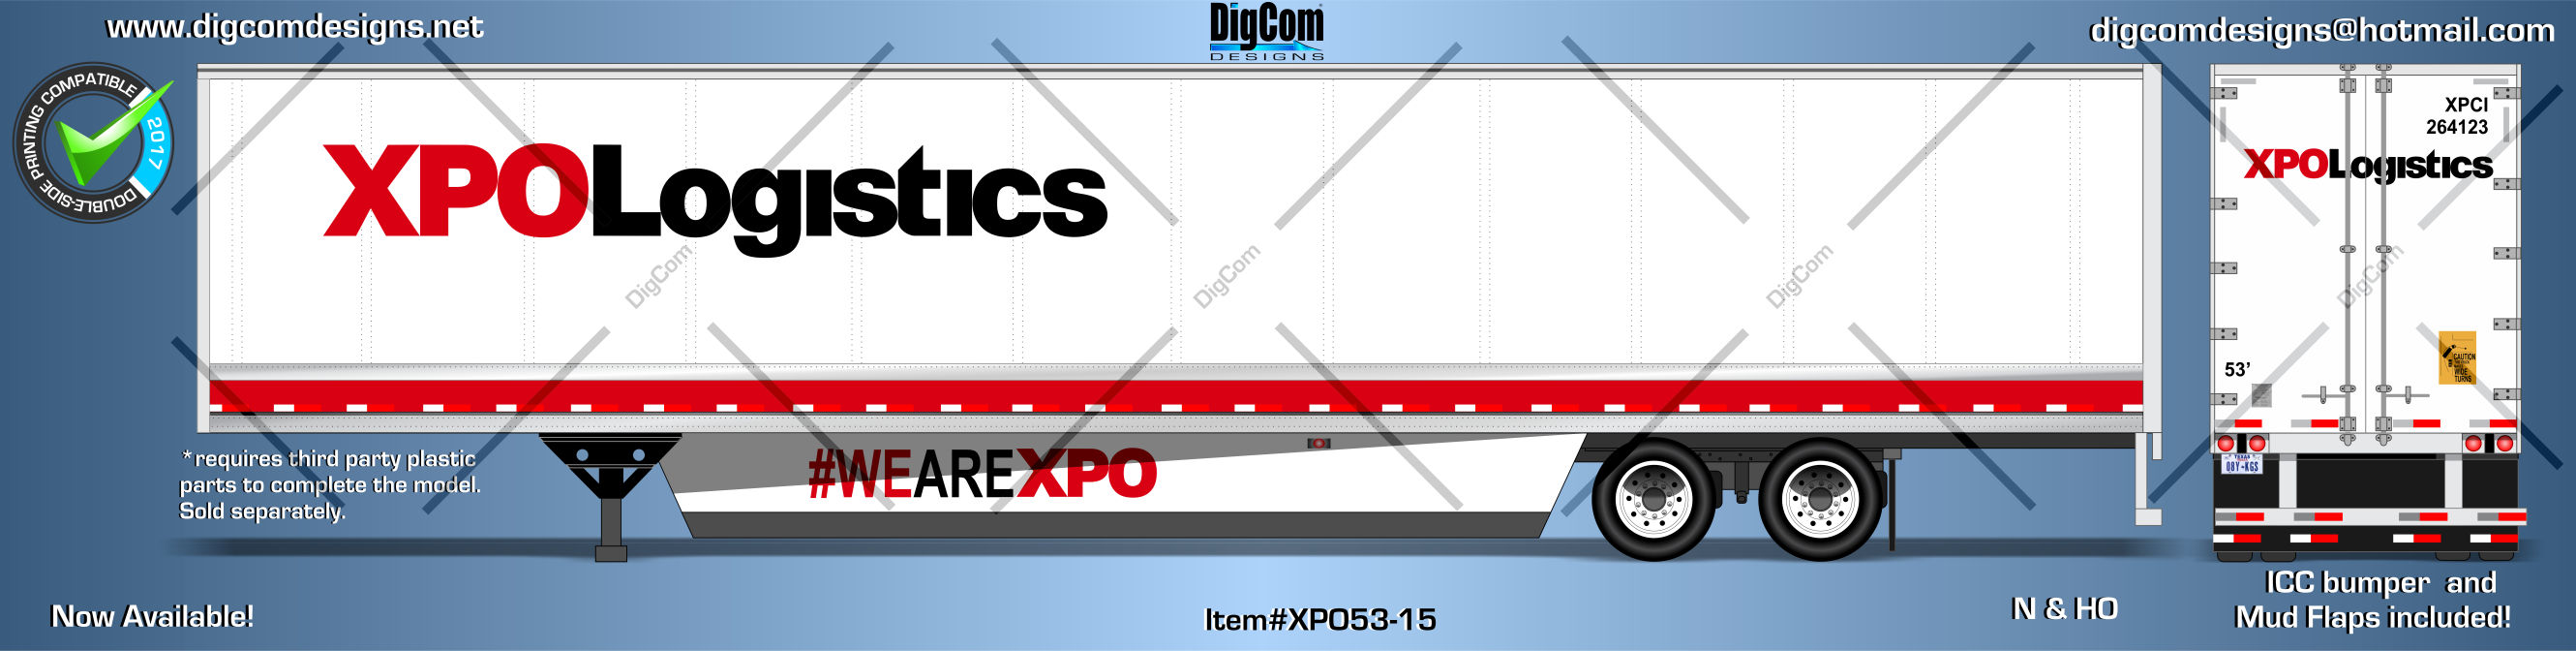 XPO LOGISTICS DESIGN.jpg